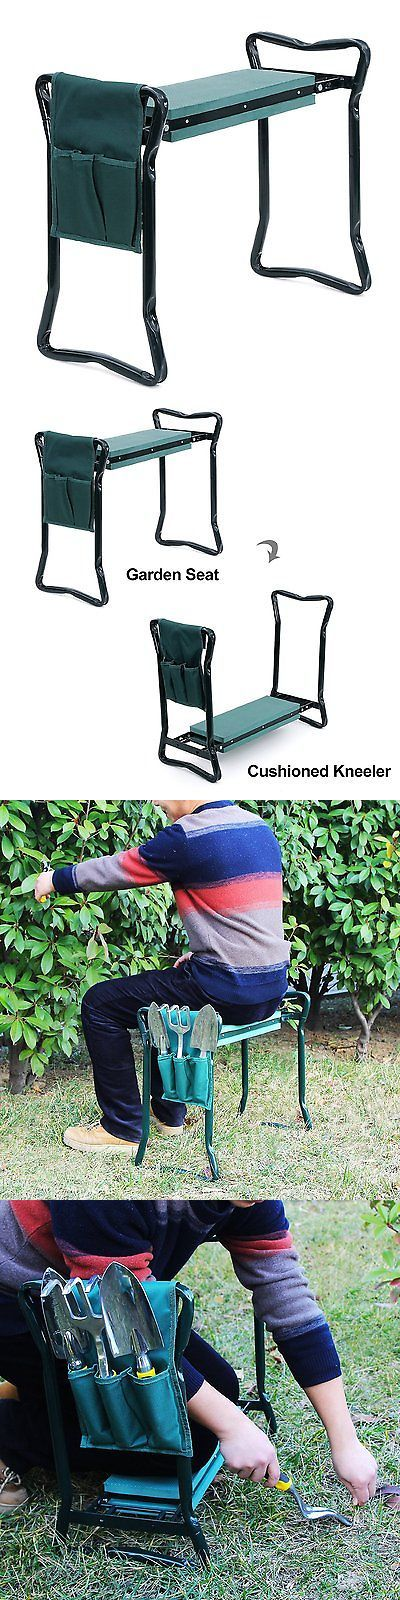 Garden Kneelers Pads and Seats 75669: Garden Kneeler Seat Stool Soft Cushion Portable Patio Folding Tool Pouch Sturdy -> BUY IT NOW ONLY: $43.93 on eBay!